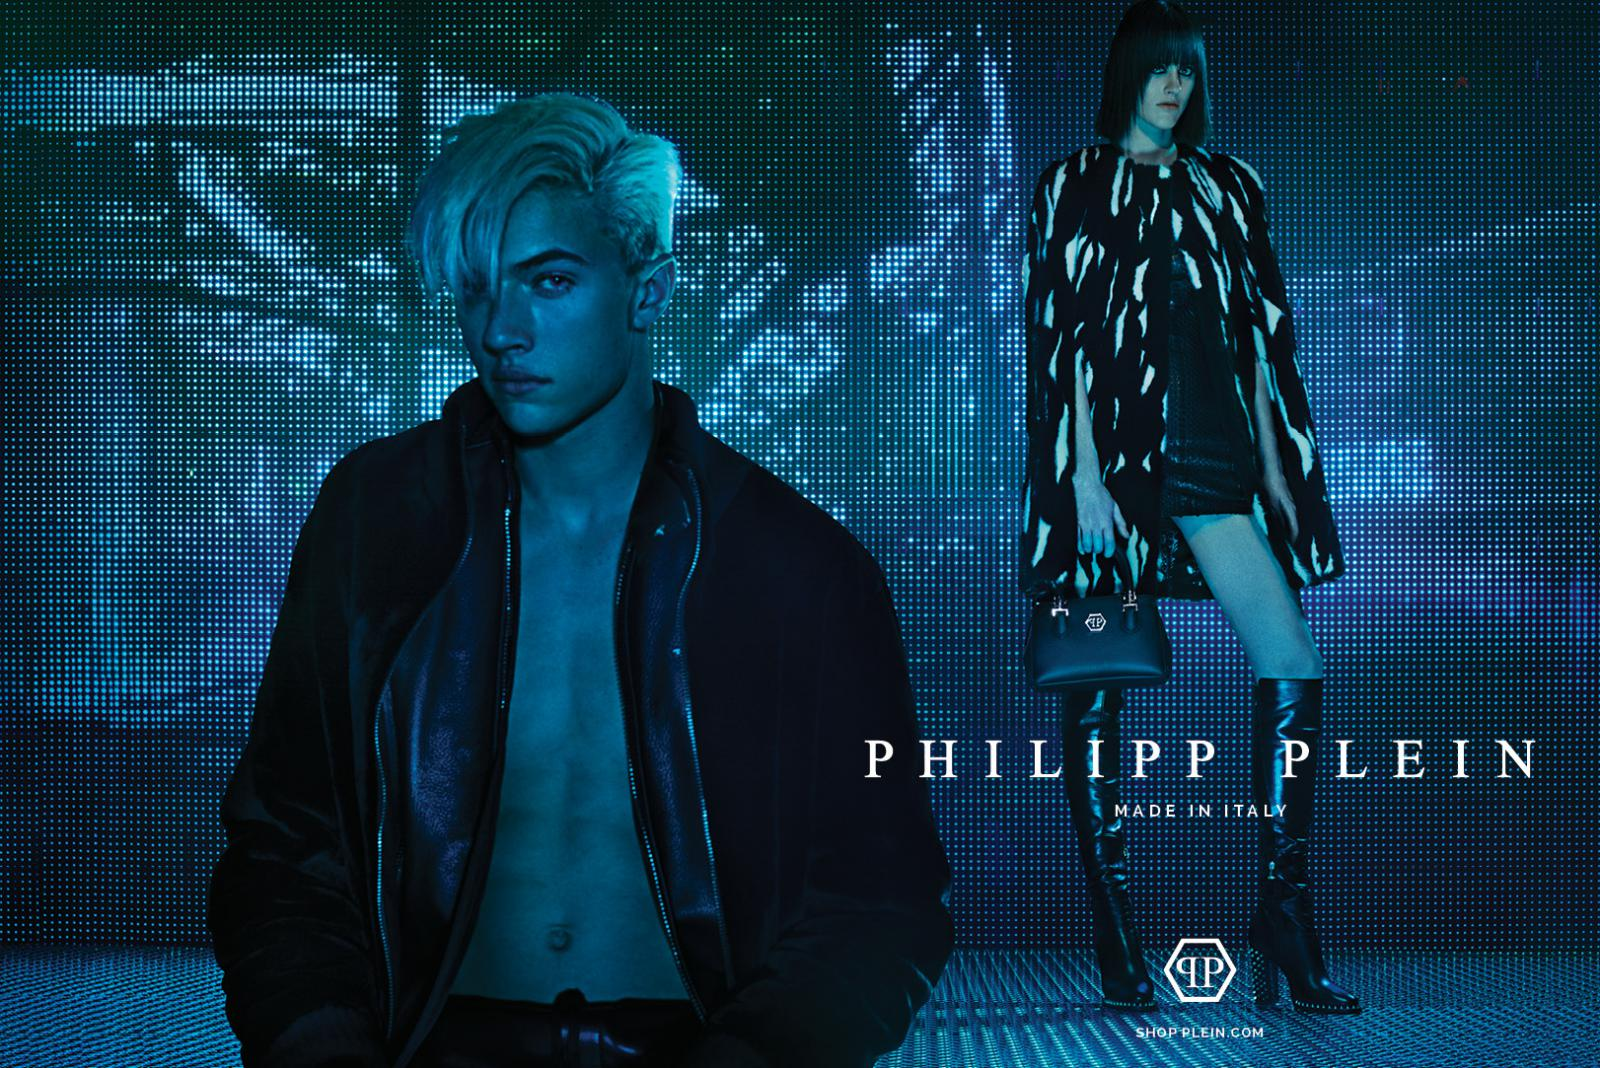 Lucky Blue Smith for Philipp Plein 2015/16